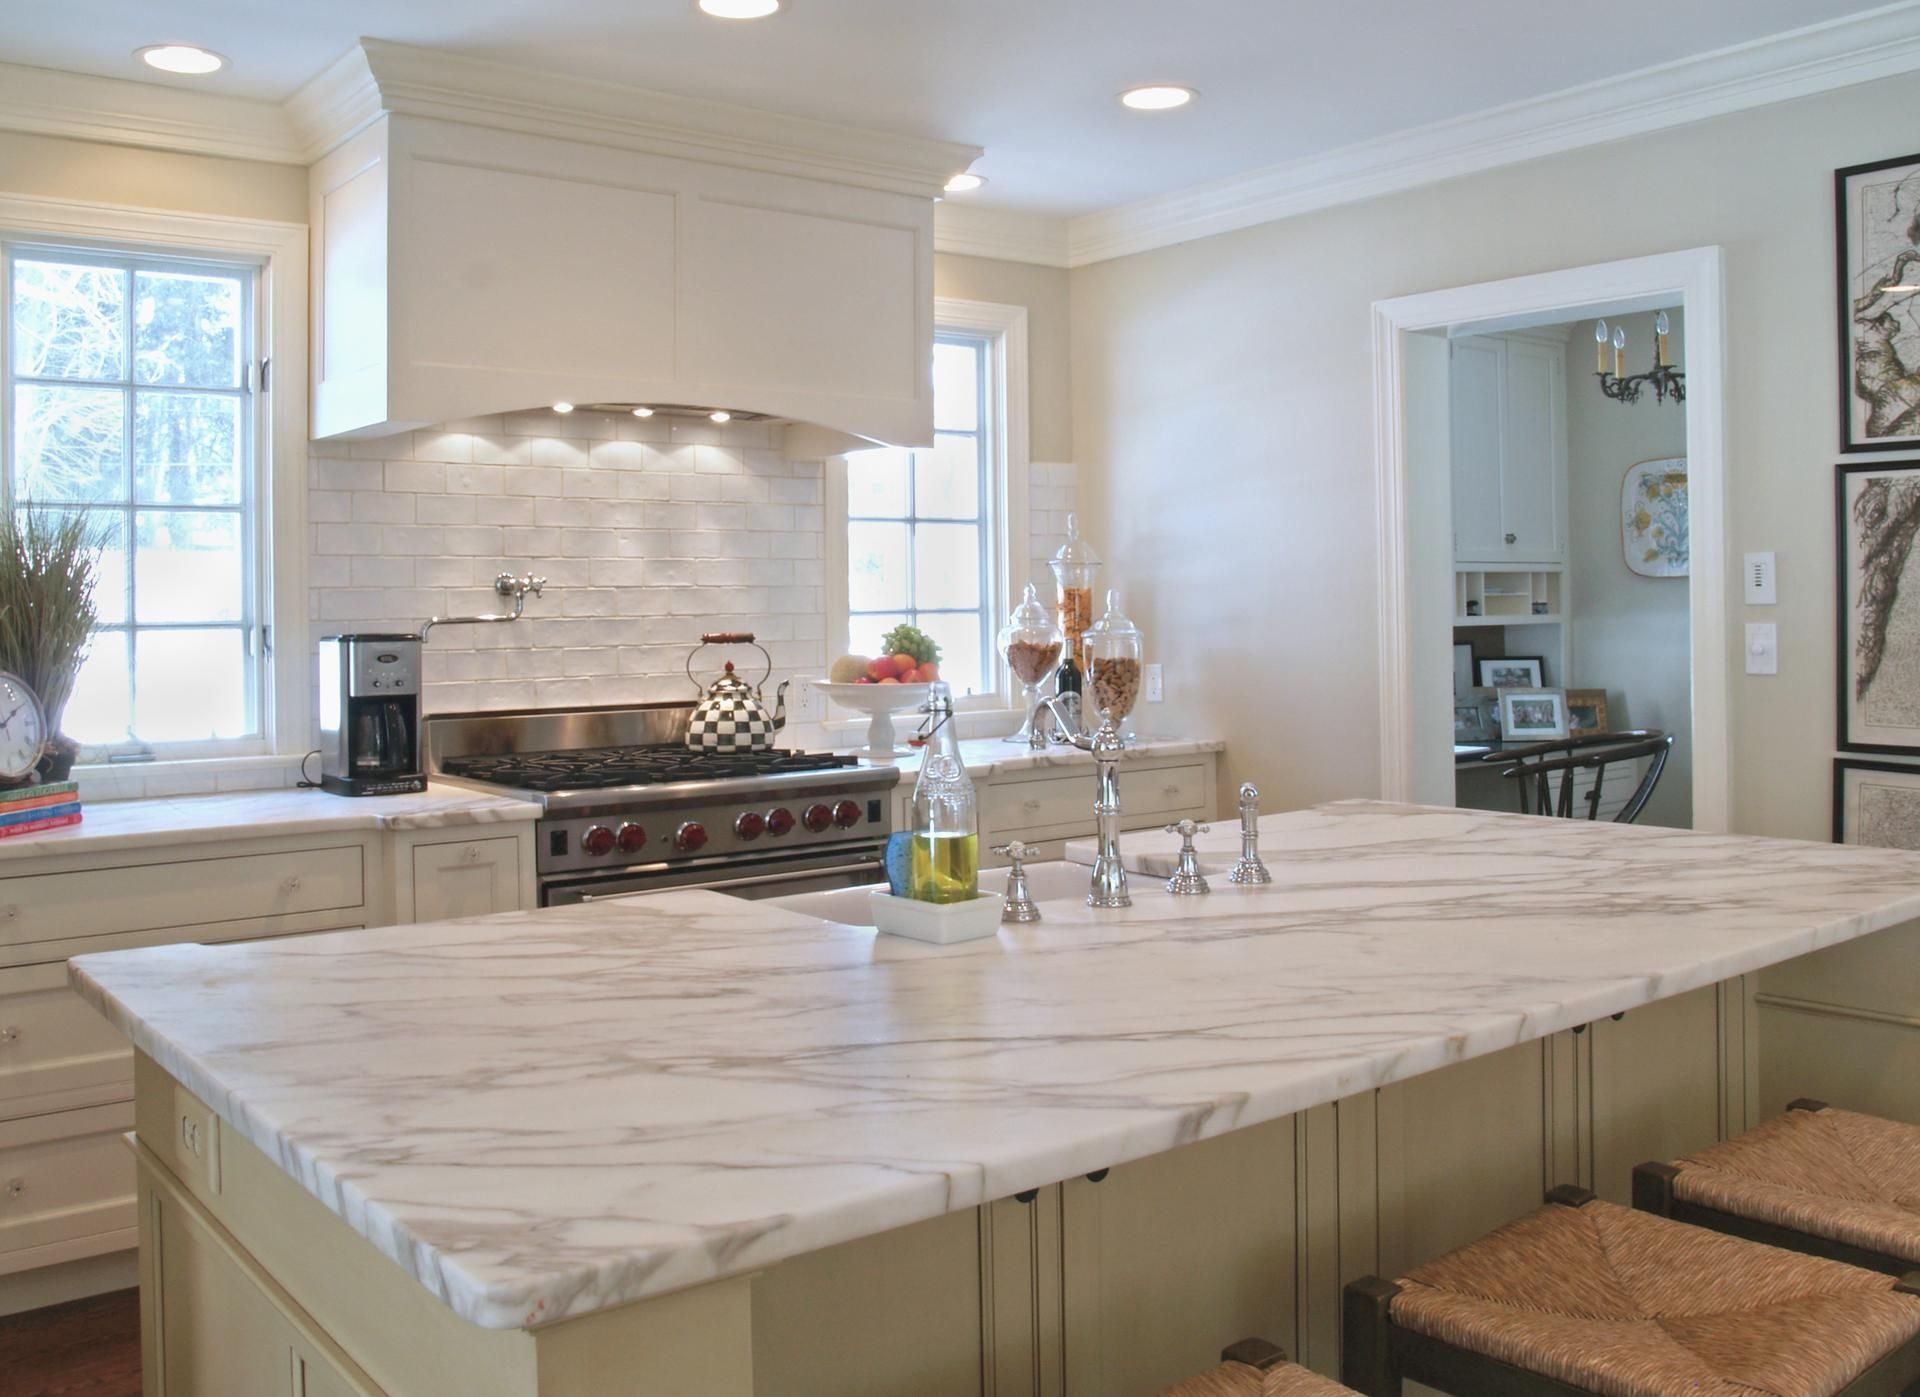 marble dream meaning, dream about marble, marble dream interpretation, seeing in a dream marble